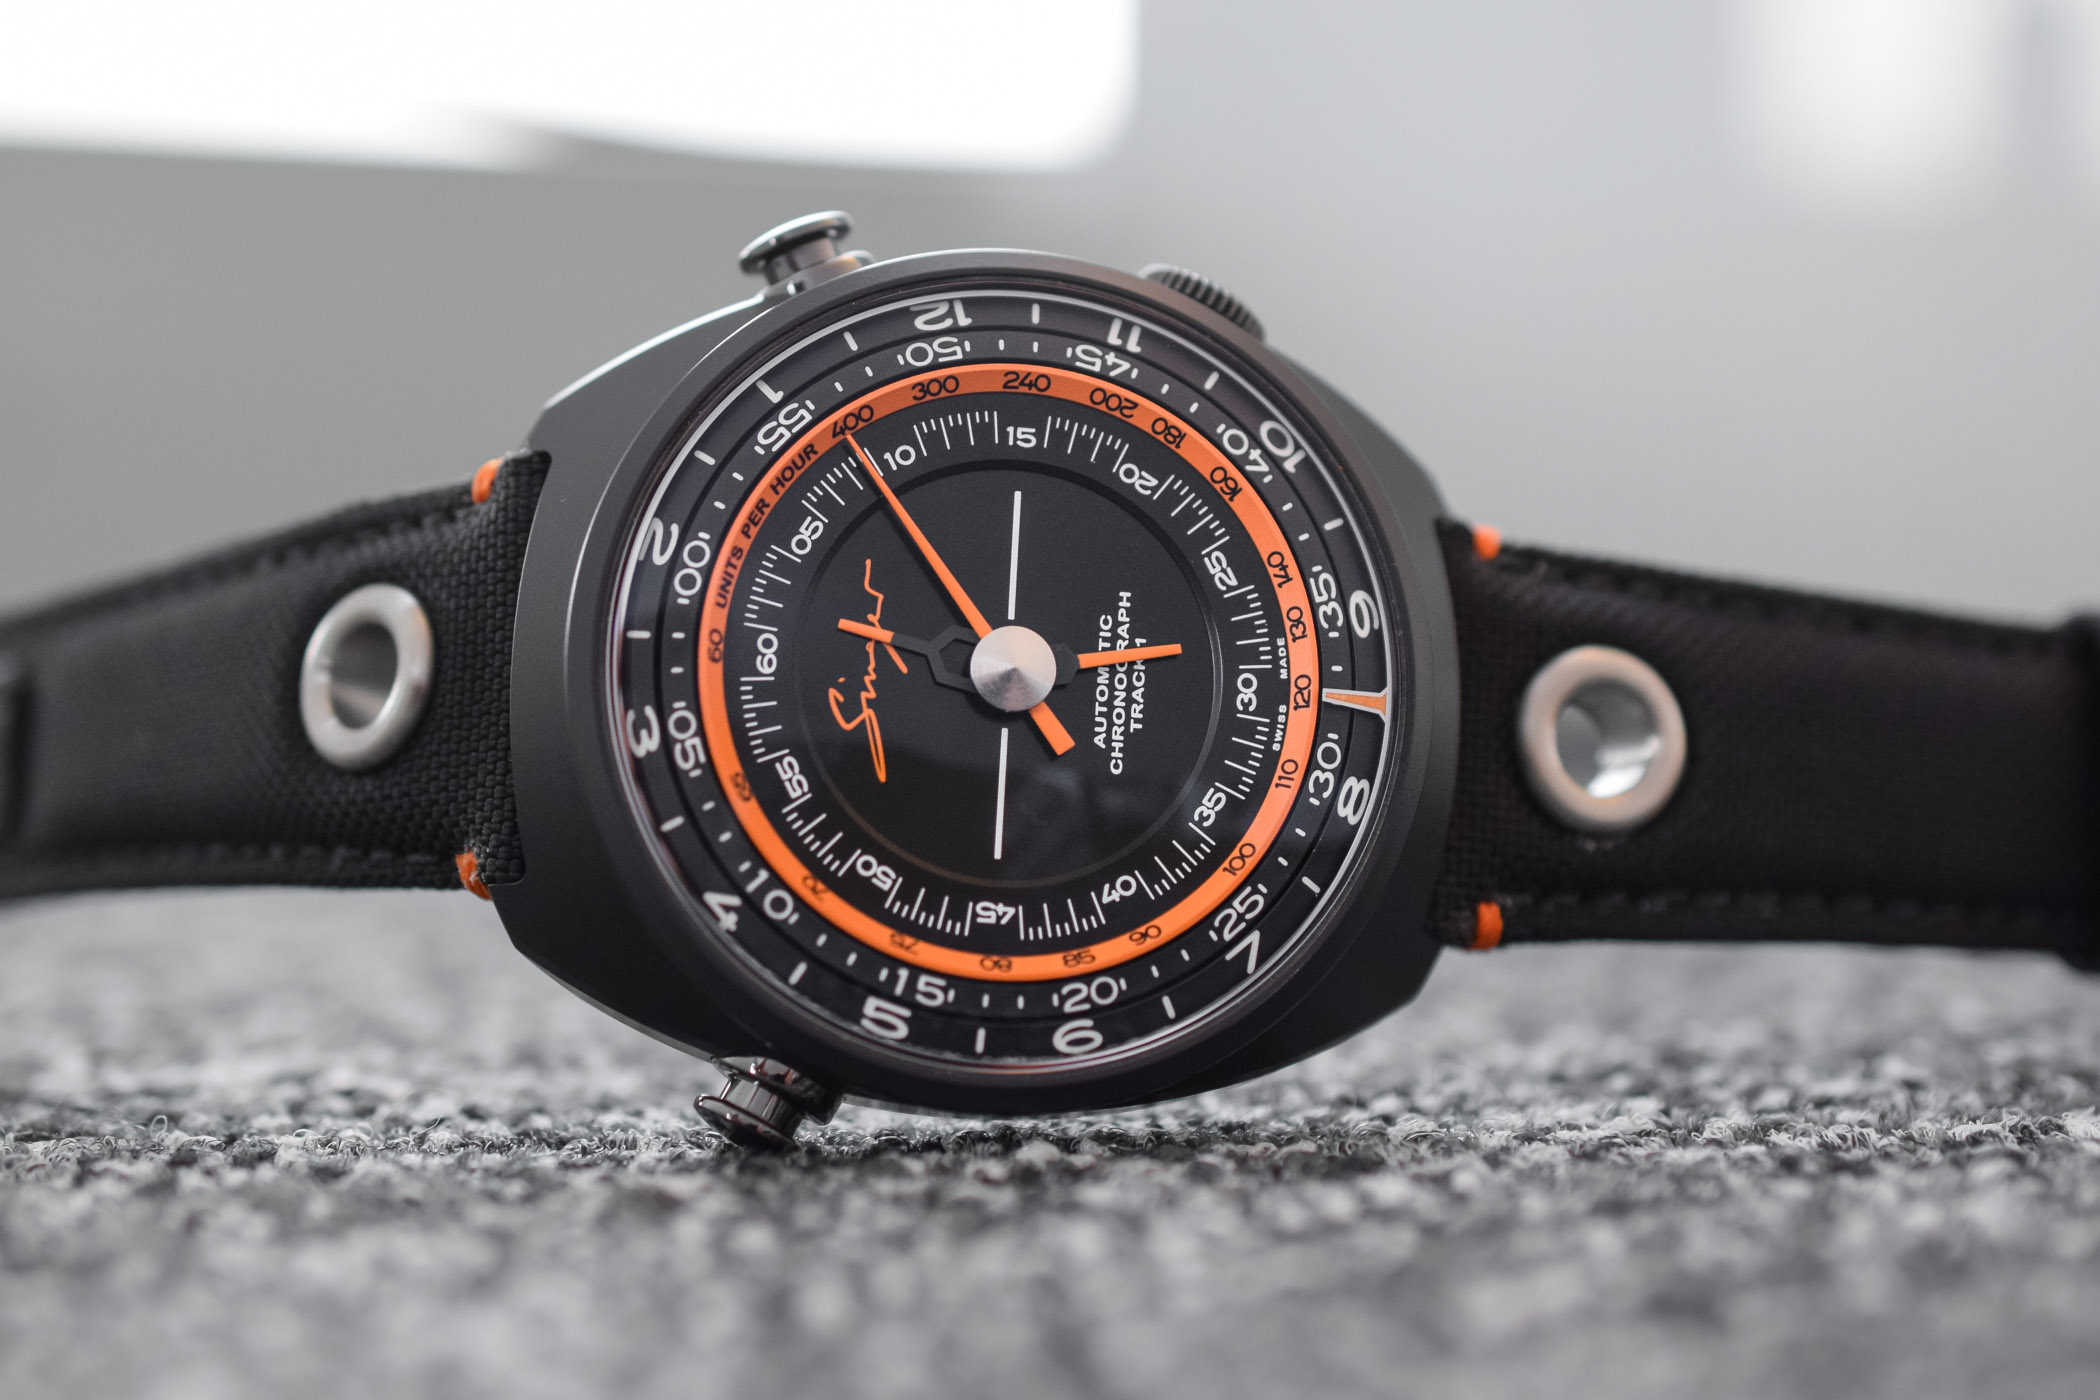 Singer Track 1 Hong-Kong Edition Black Ceramic-aluminum